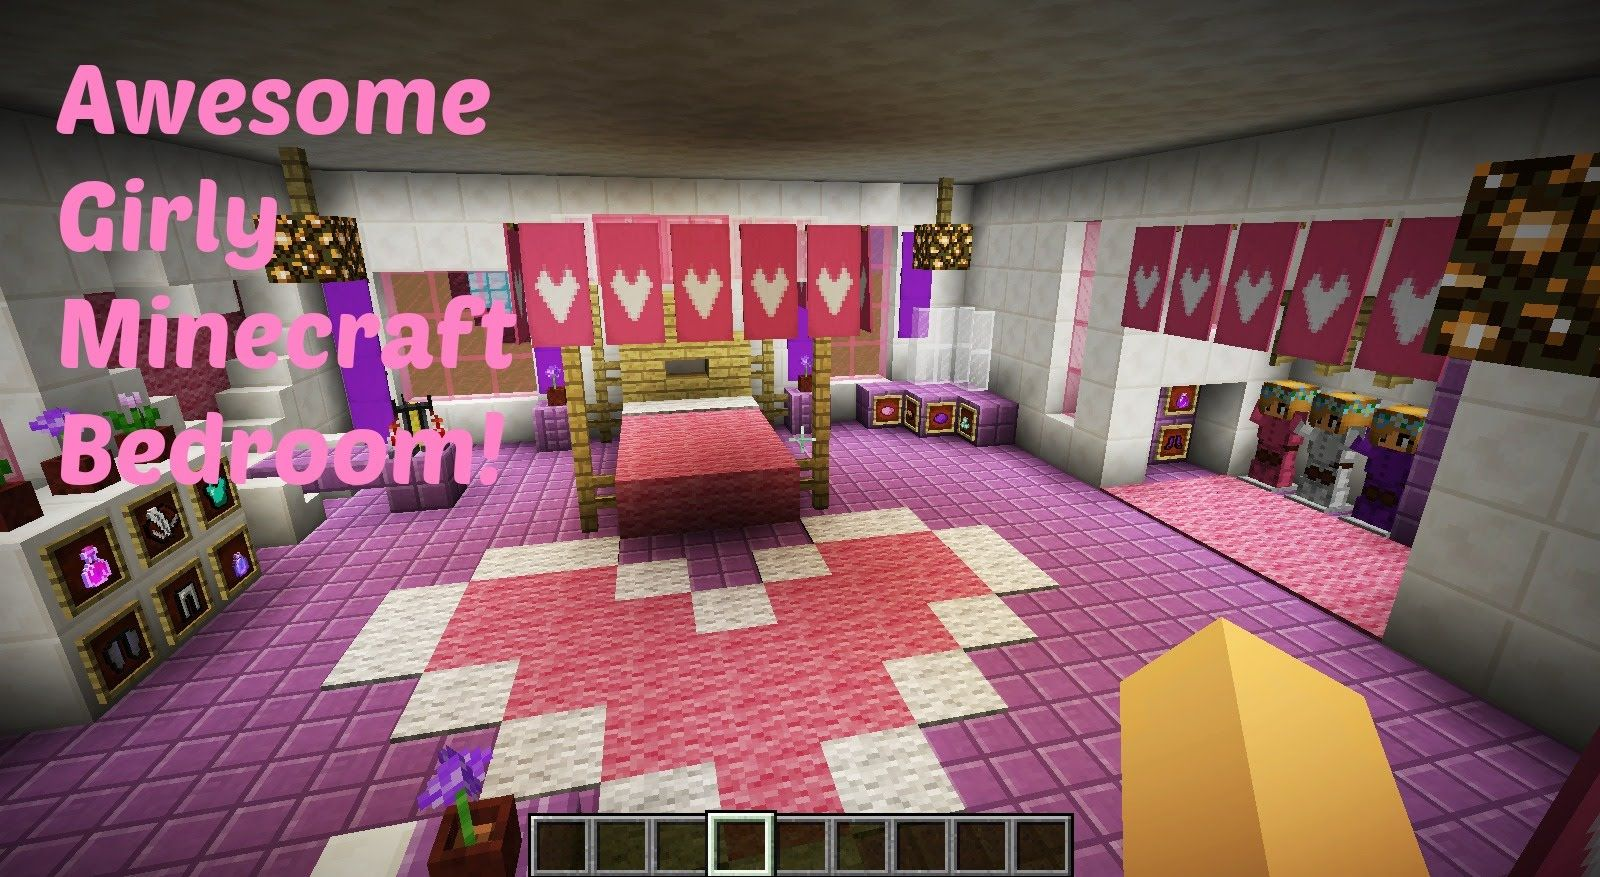 Awesome Girly Minecraft Bedroom Youtube Inspired Home Decor Stores